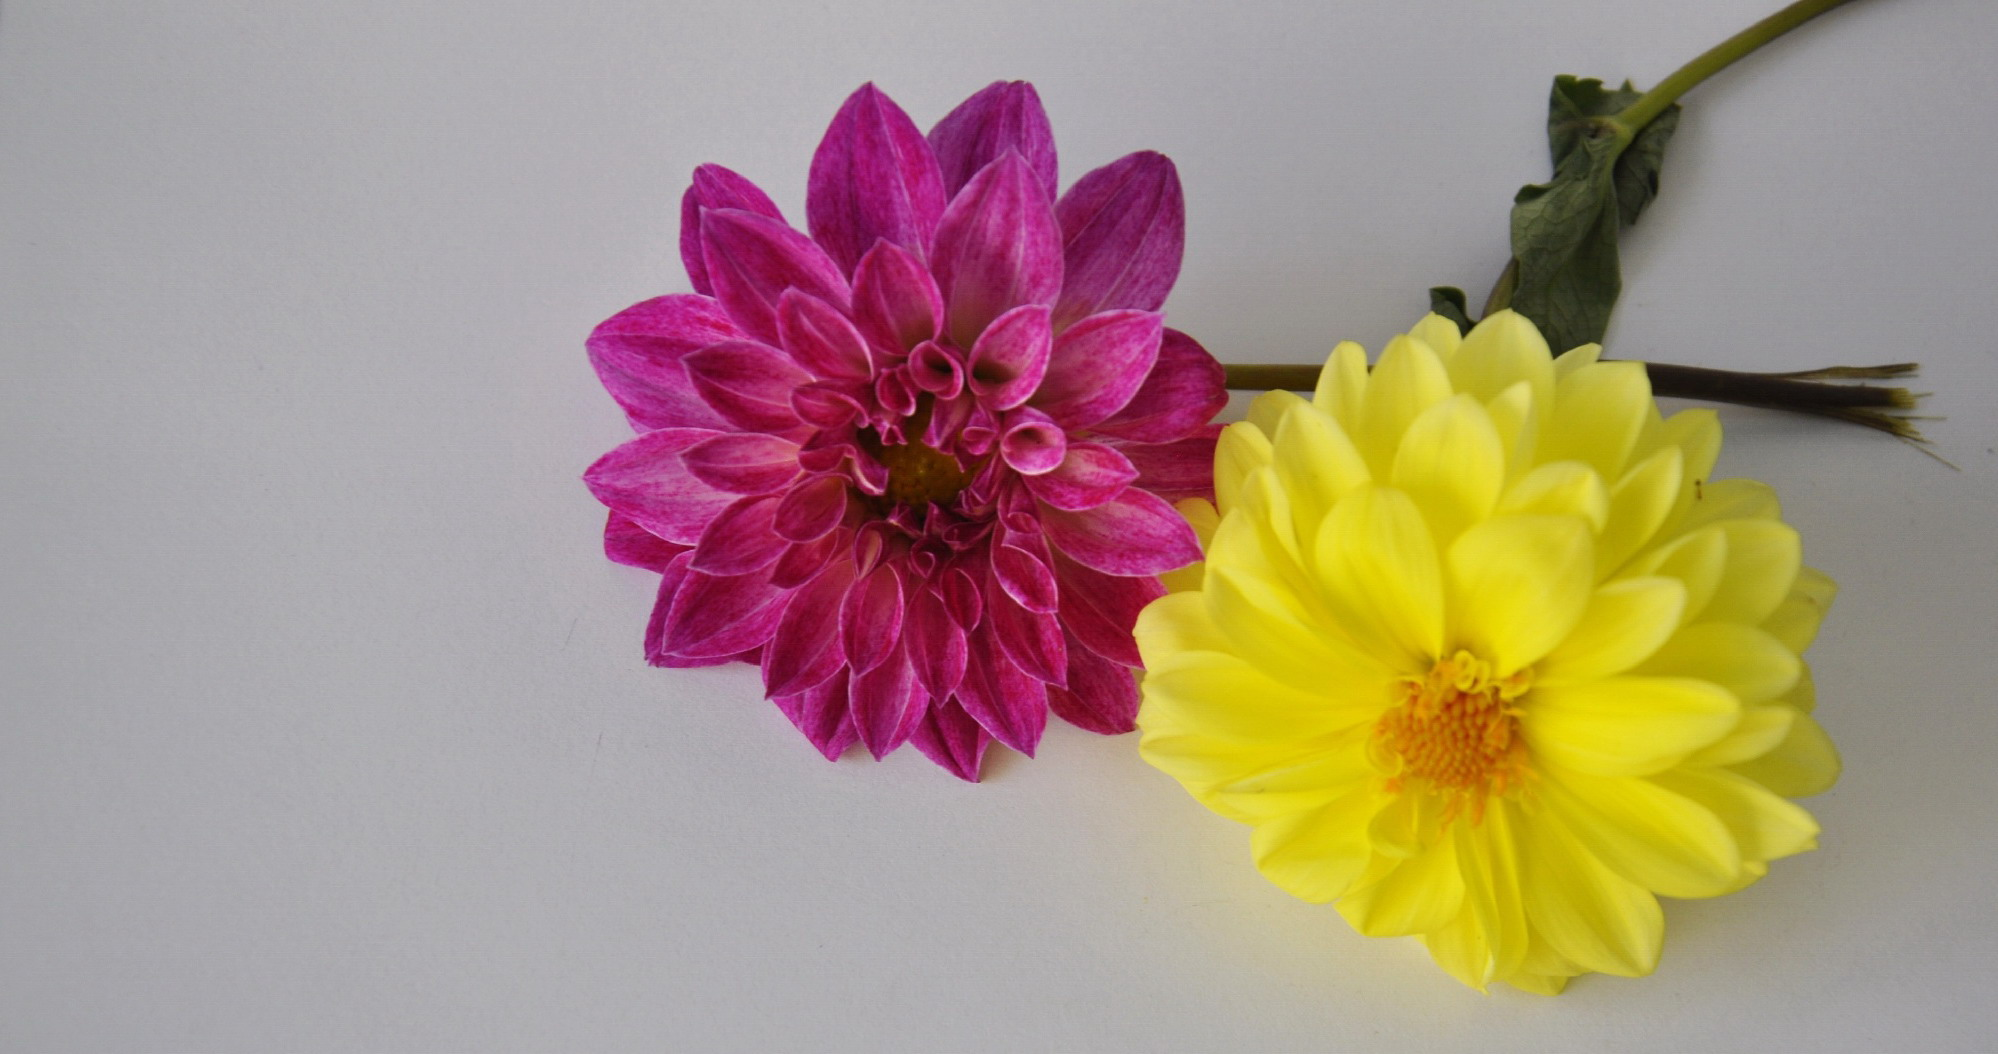 Free Photo Two Beautiful Flowers Love Lovely Natural Free